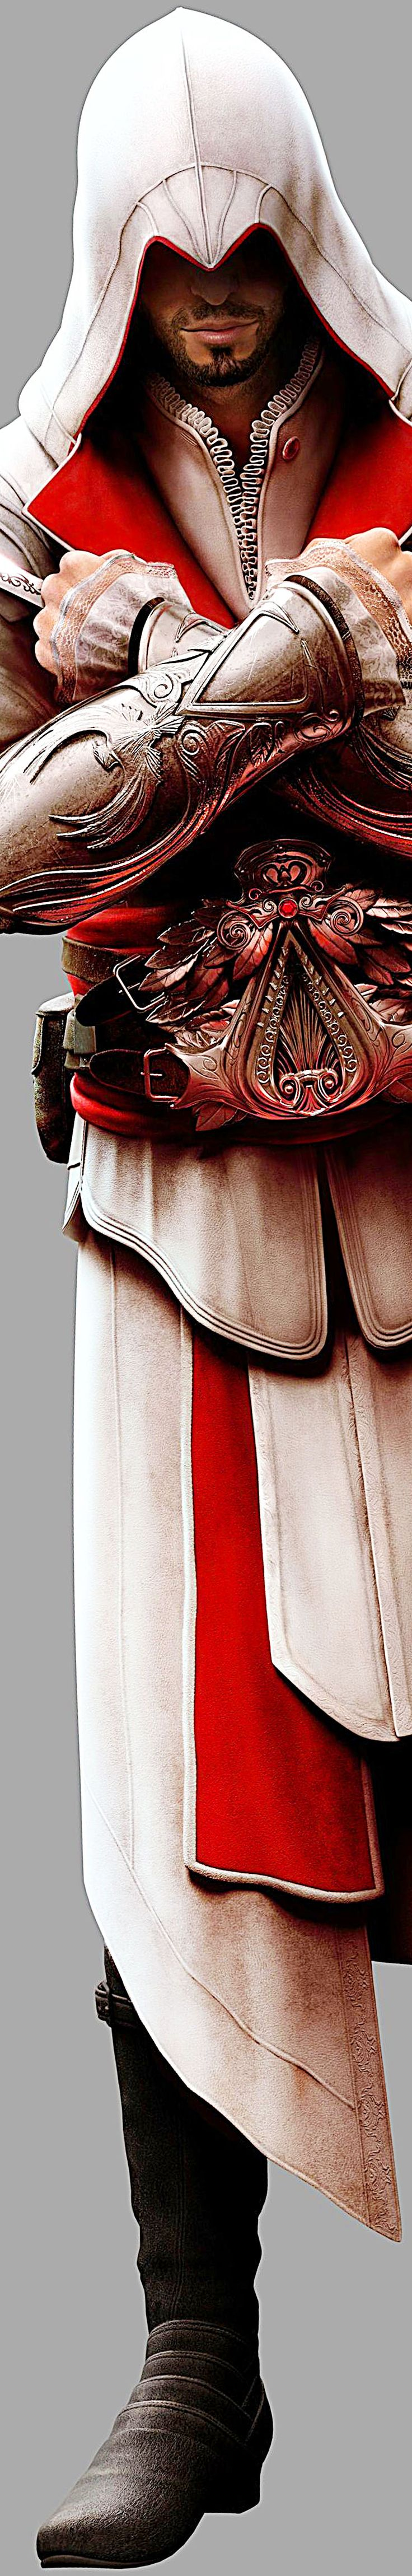 Ezio Auditore da Firenze -Assassin's Creed Brotherhood